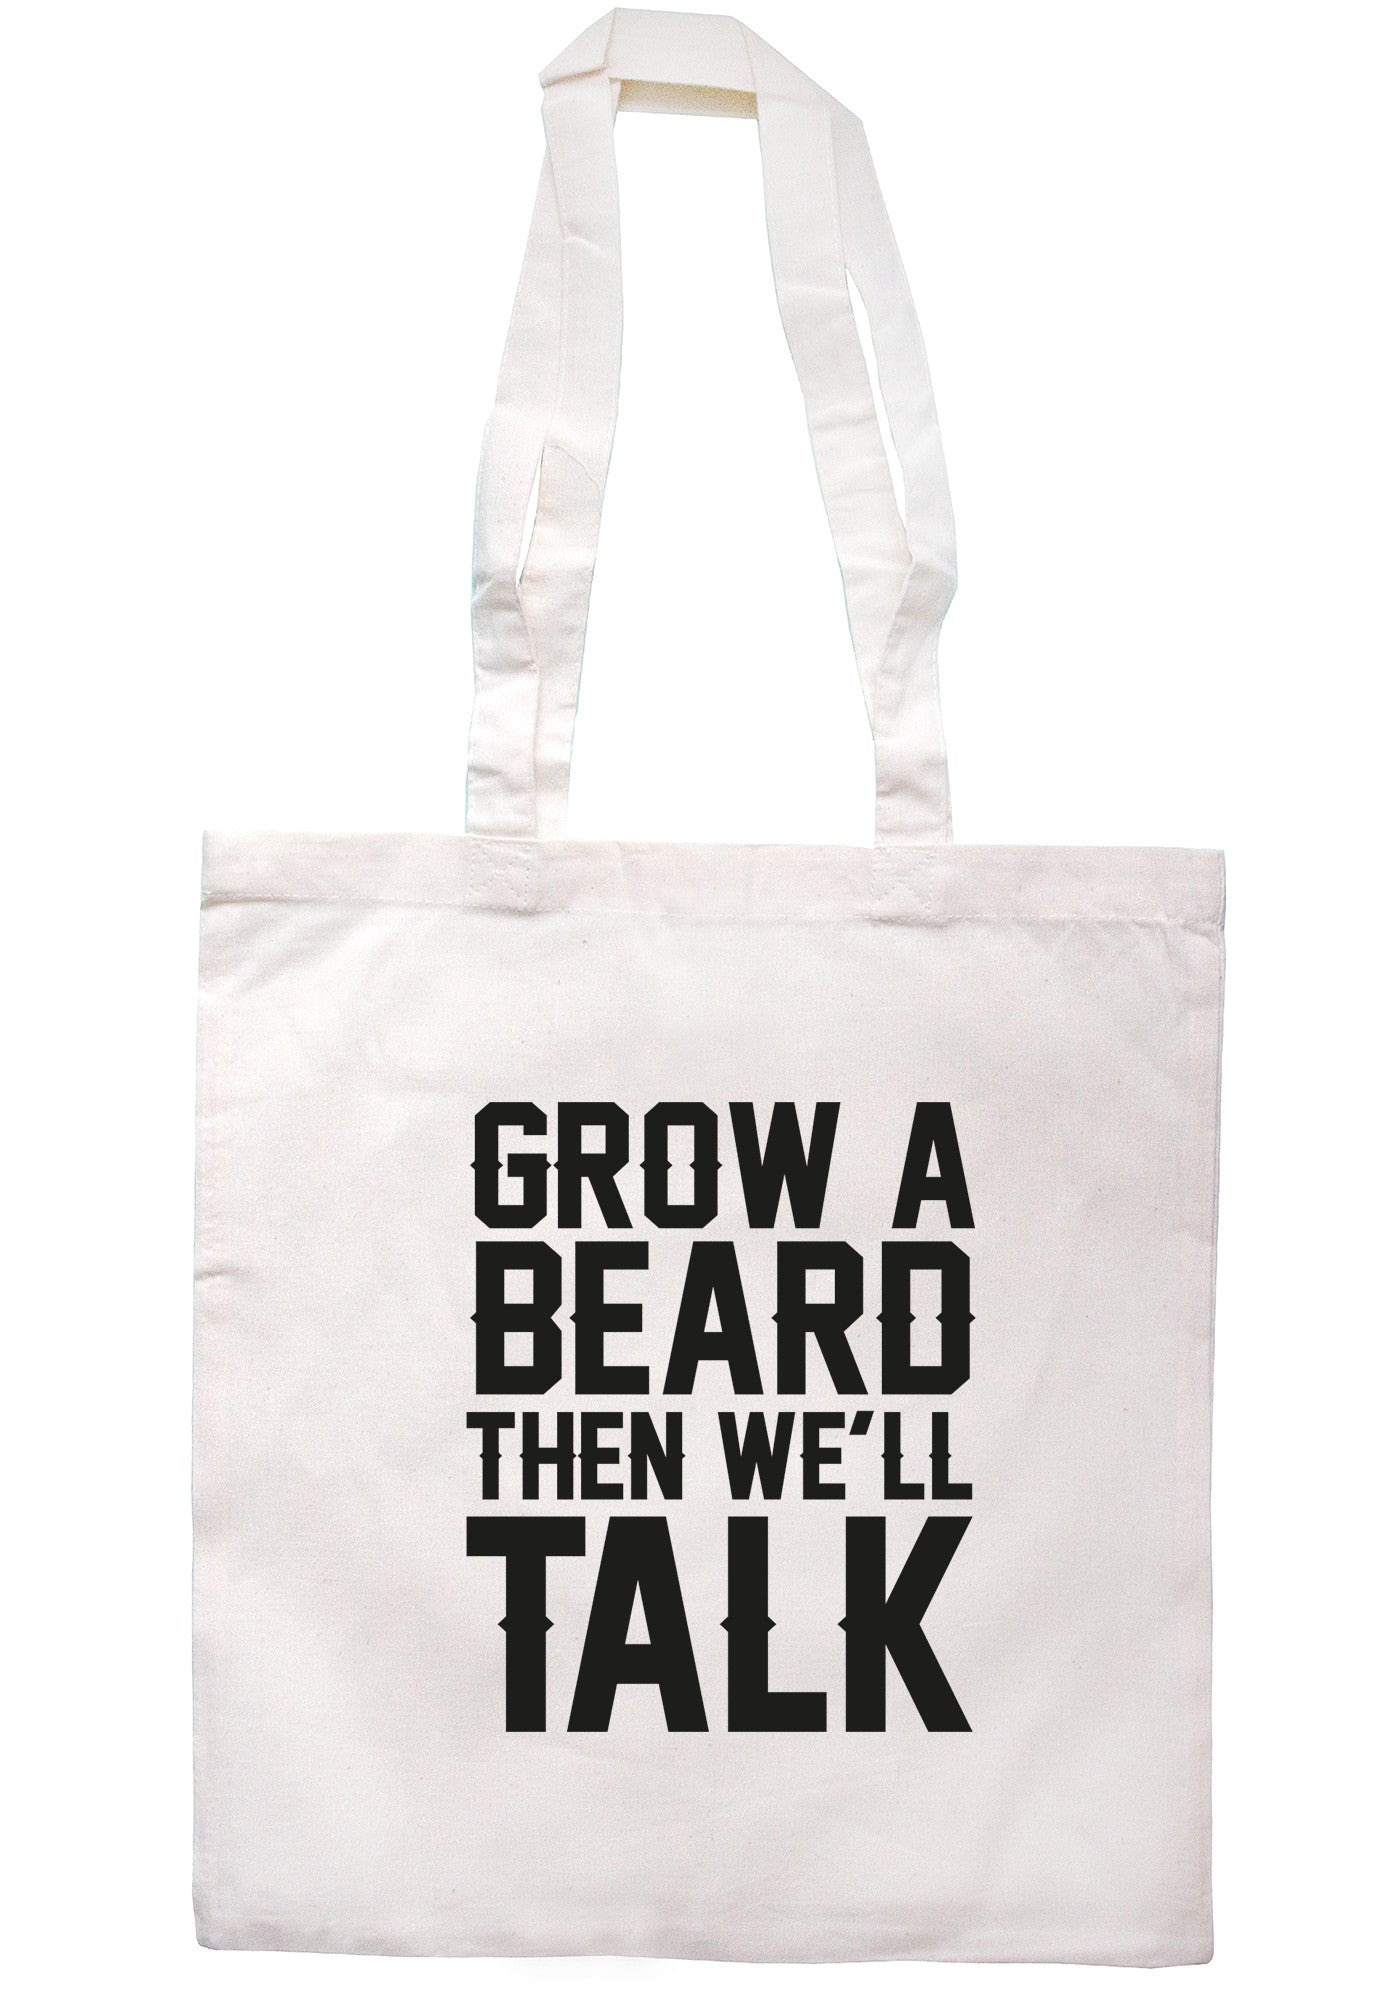 Grow A Beard Then We'll Talk Tote Bag TB0360 - Illustrated Identity Ltd.